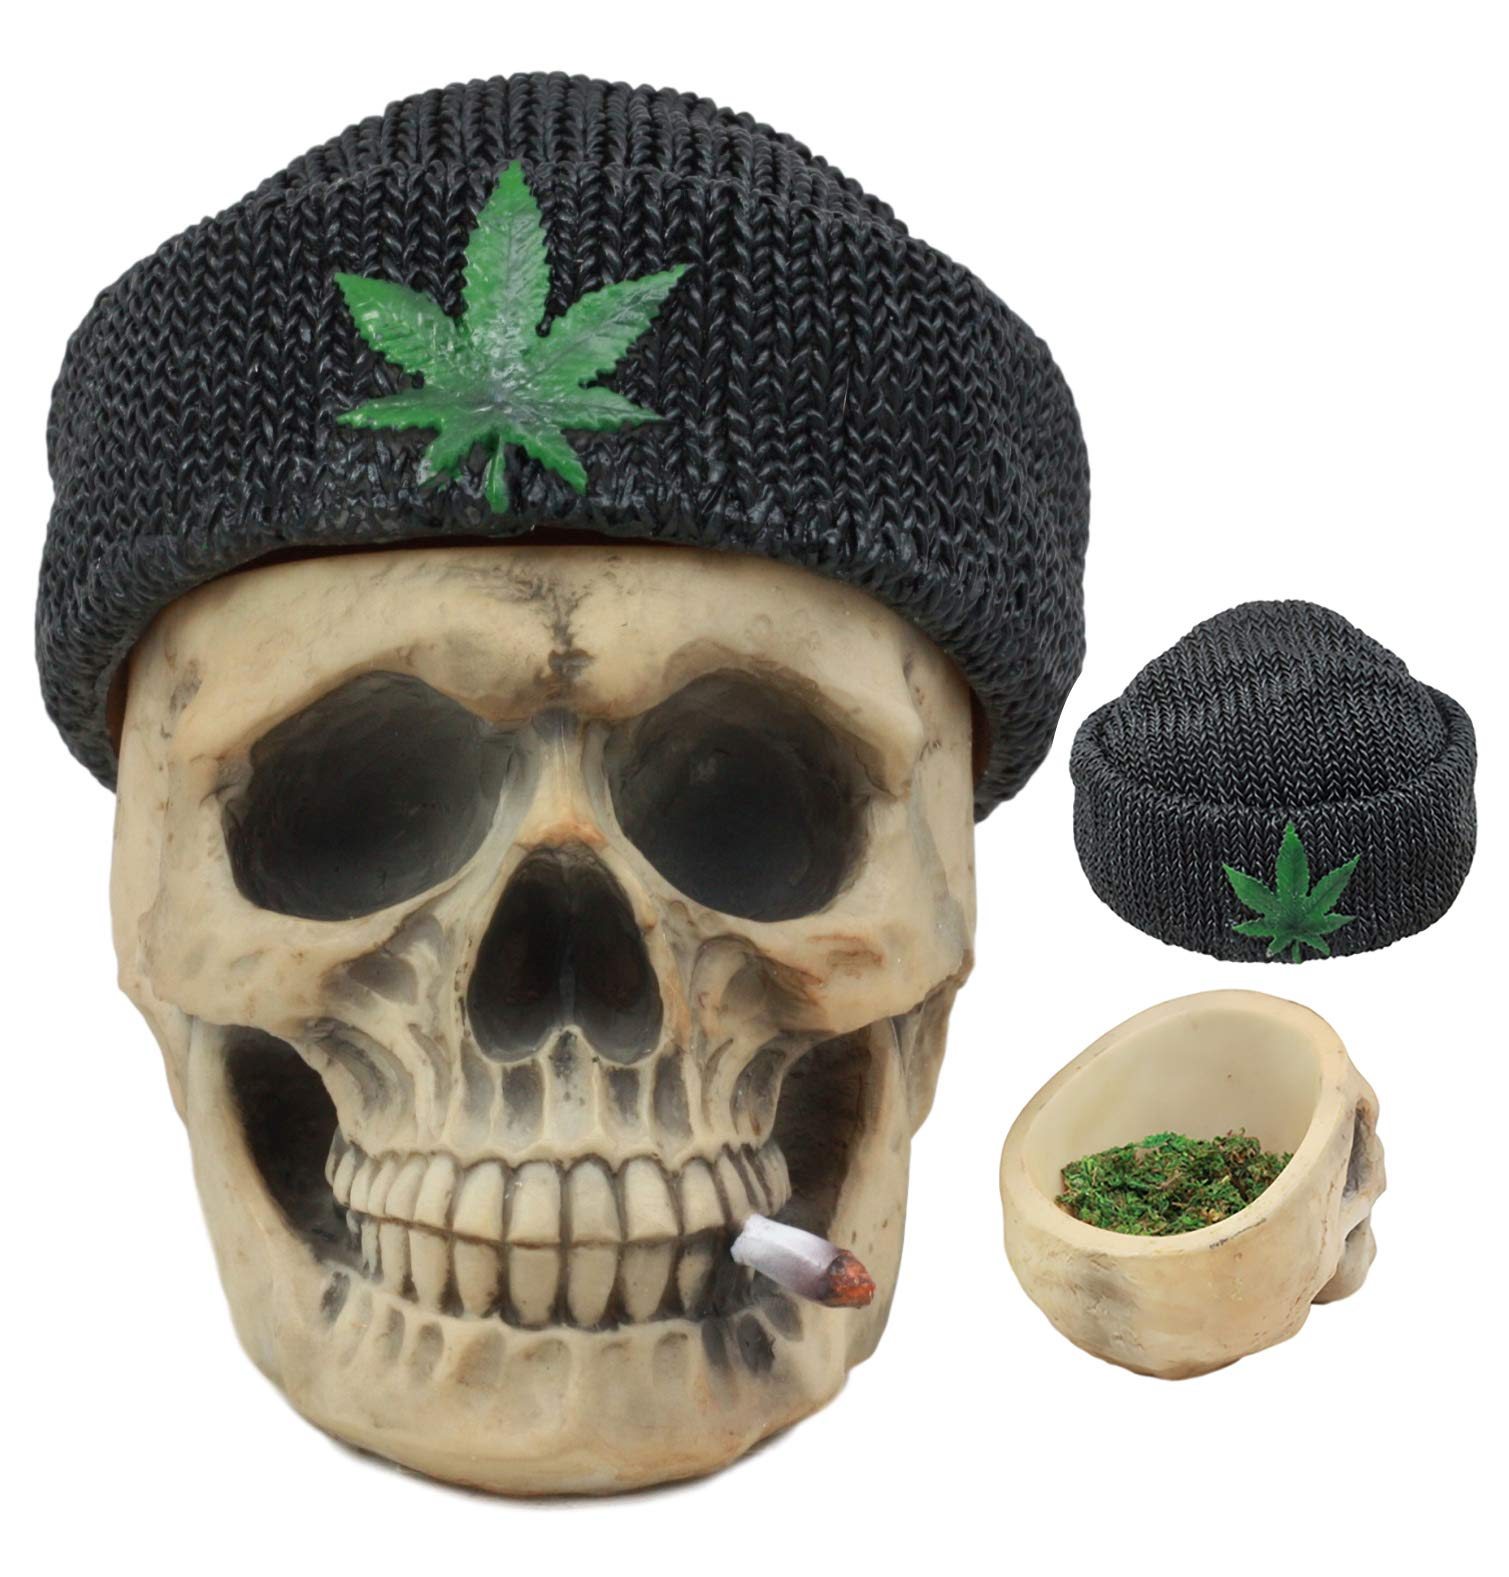 Ebros Got Weed? Day of The Dead Ossuary Smoking Human Skull with Cannabis Weed Leaf Beanie Hat Ashtray Jewelry Box Figurine Skeleton Cranium Trinket Stash Box Statue 6.5'' Long Or As Cigarette Ashtray